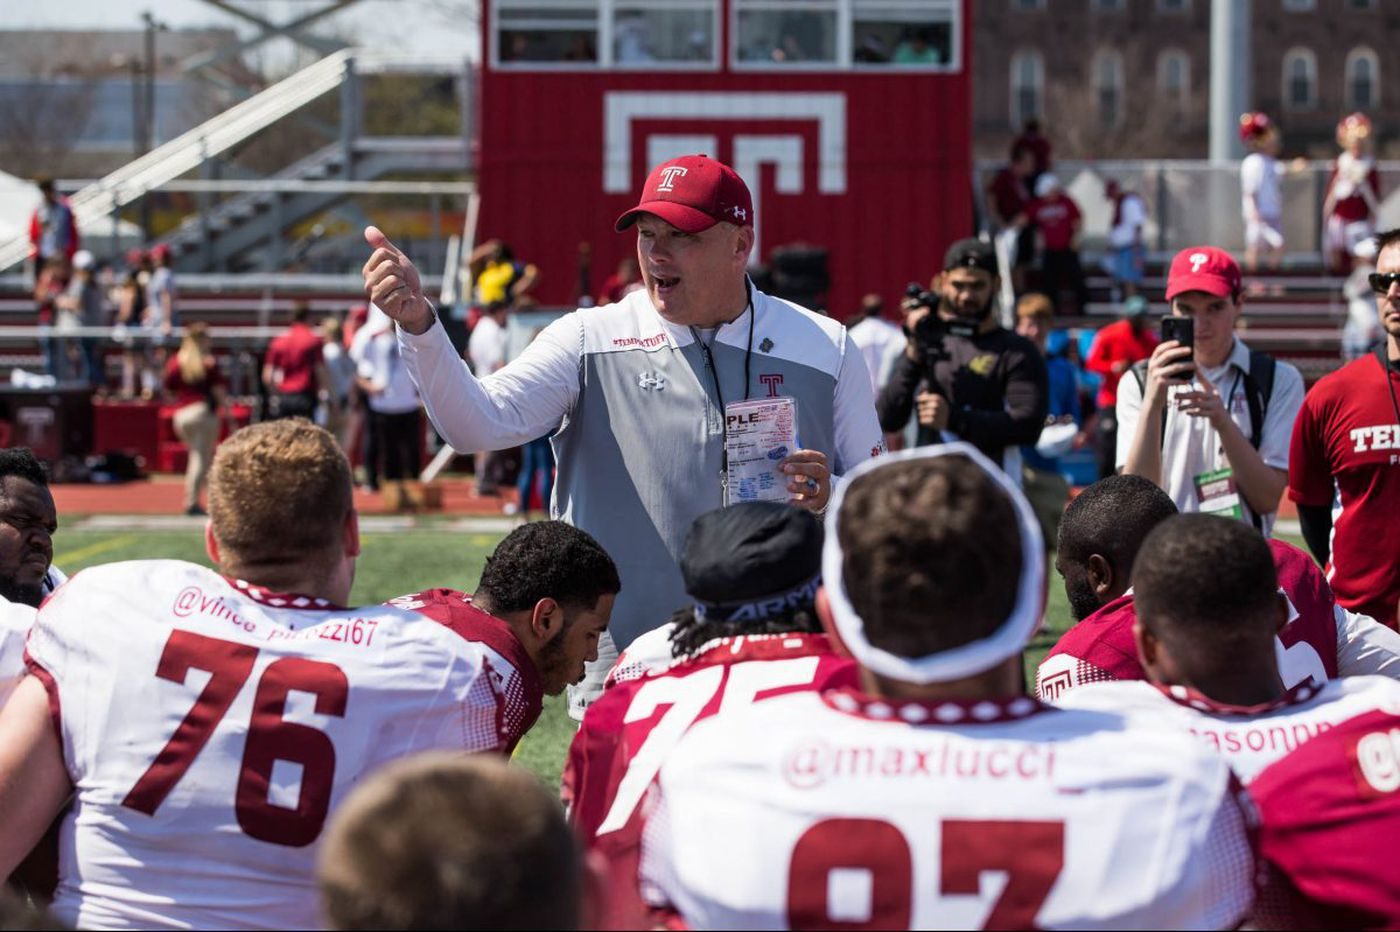 Five observations after Temple's spring football season